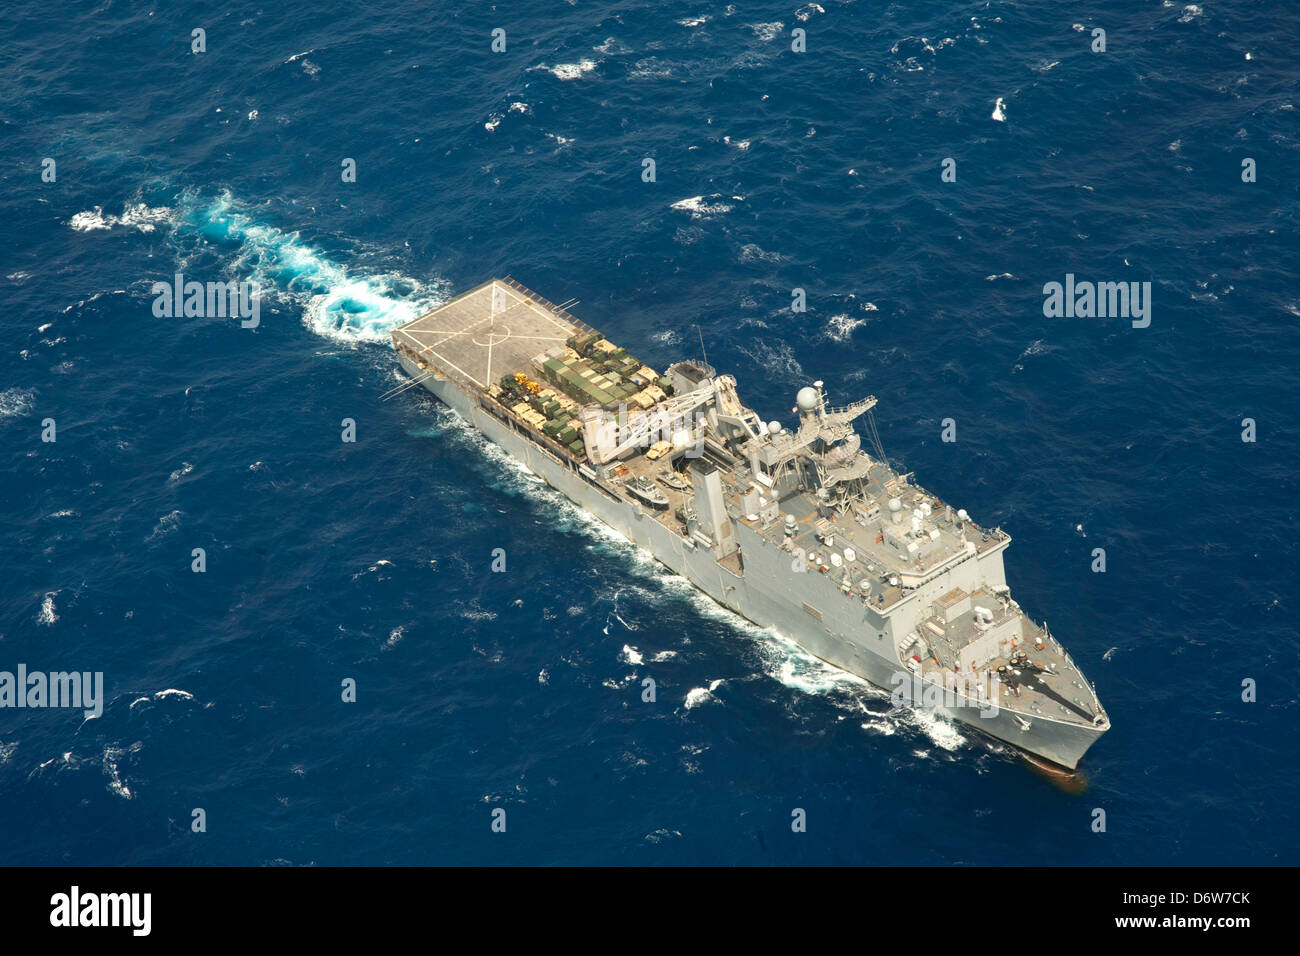 US Navy Amphibious dock landing ship USS Rushmore during operations April 23, 2013 in the Pacific Ocean. - Stock Image